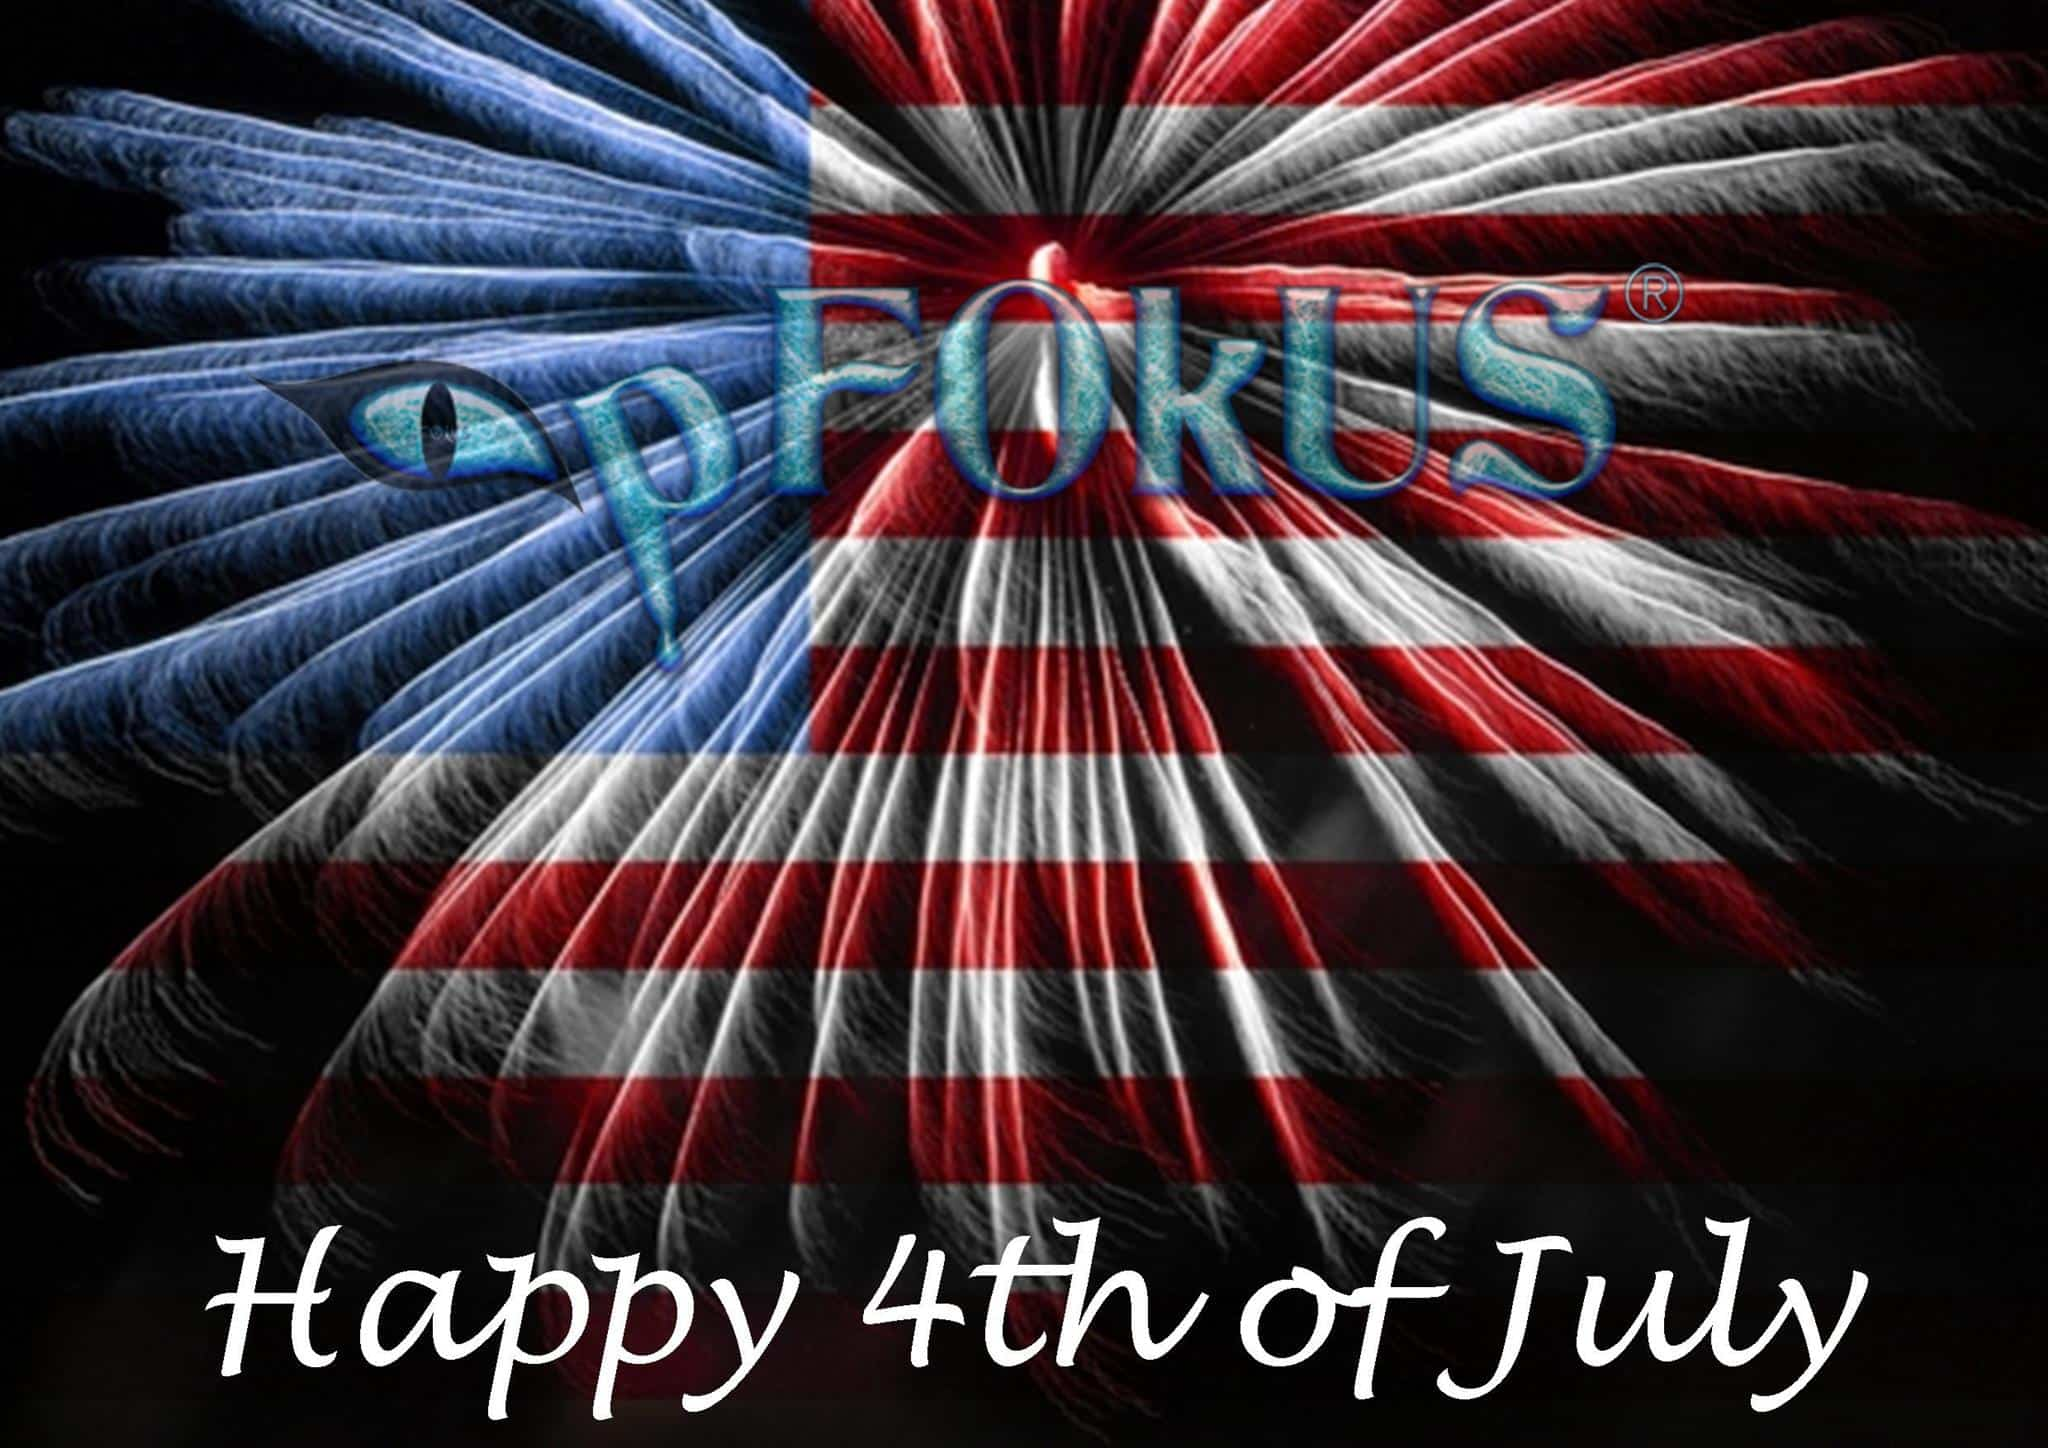 Celebrate Independence Day 4th of July with pFOkUS